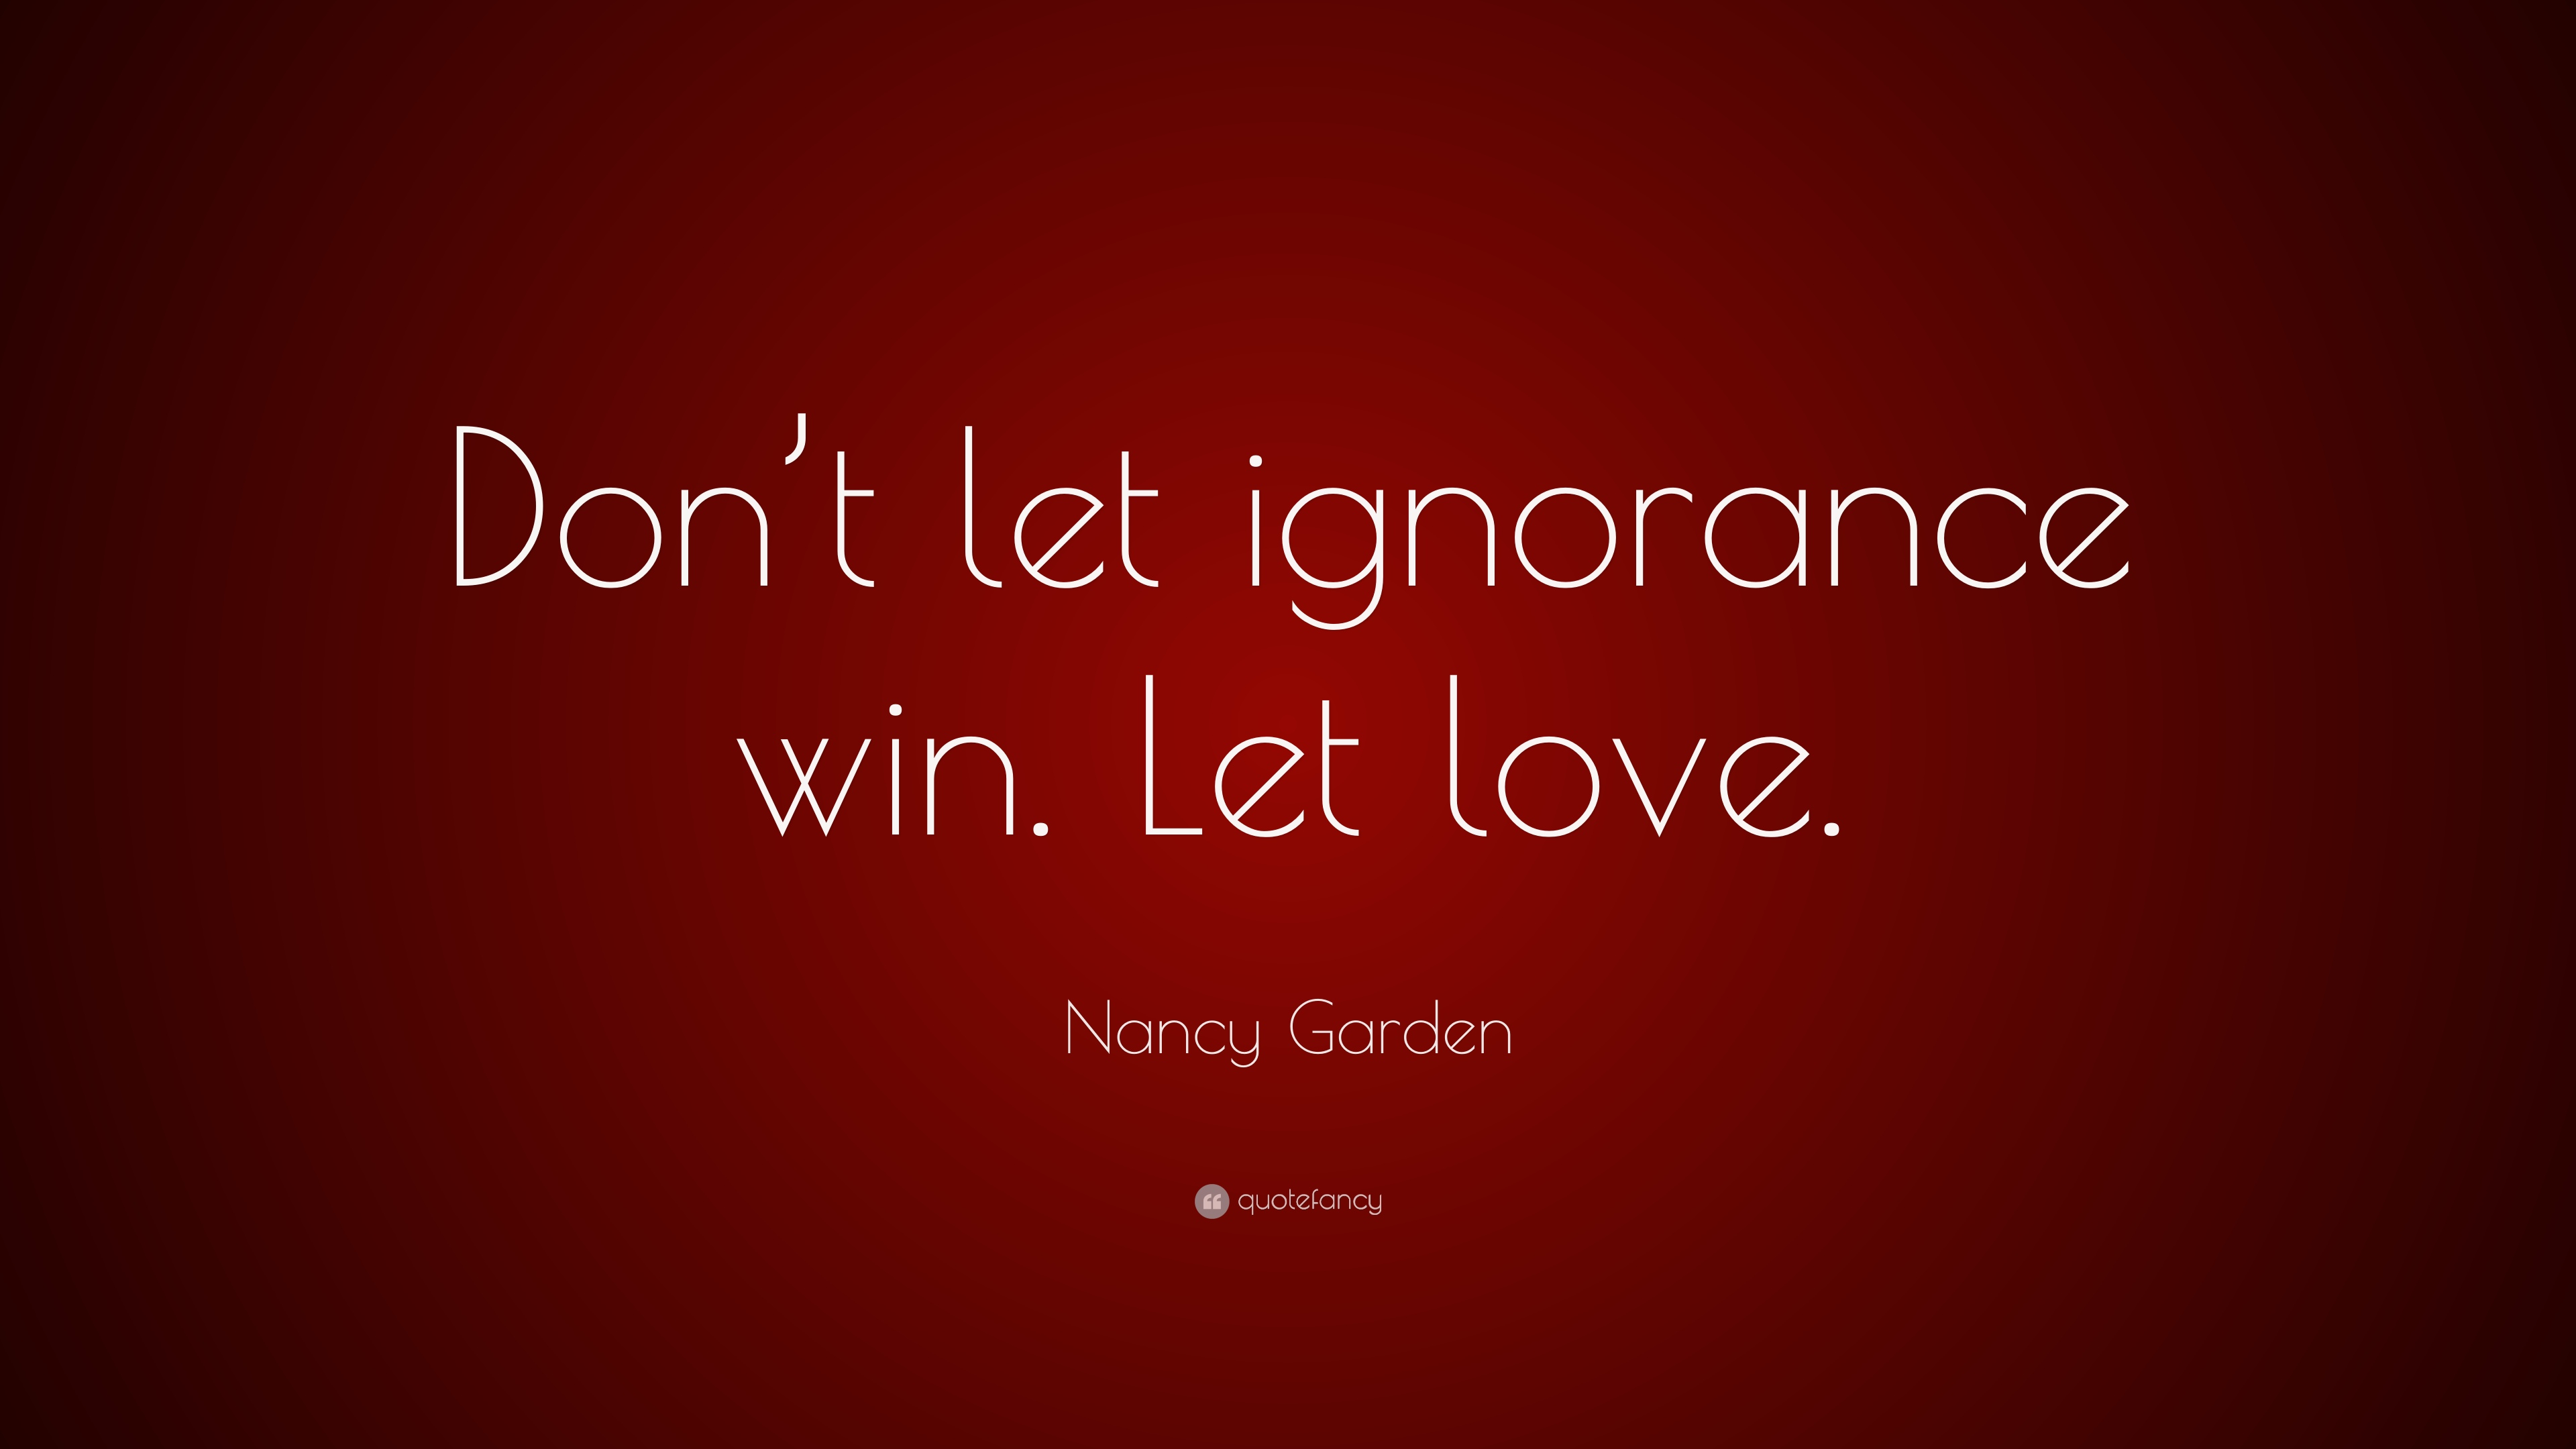 Amazing Wallpaper Love Windows 7 - 1538785-Nancy-Garden-Quote-Don-t-let-ignorance-win-Let-love  Picture_1739100.jpg